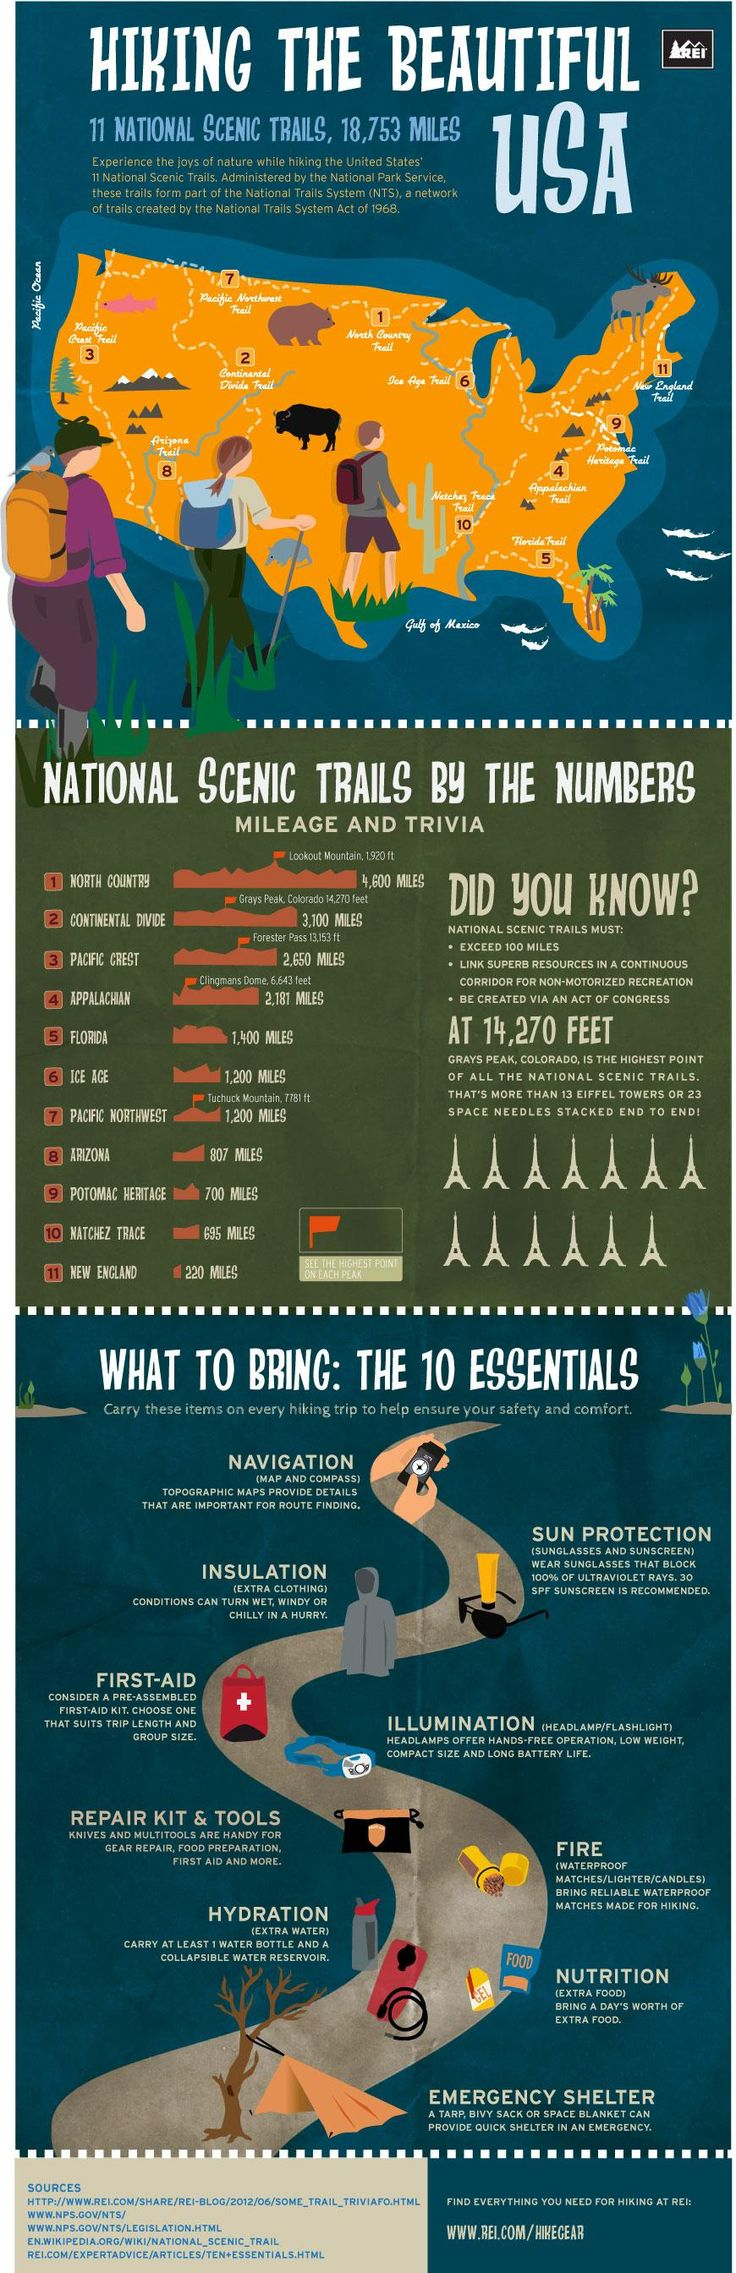 Have You Hiked Any of the National Scenic Trails?